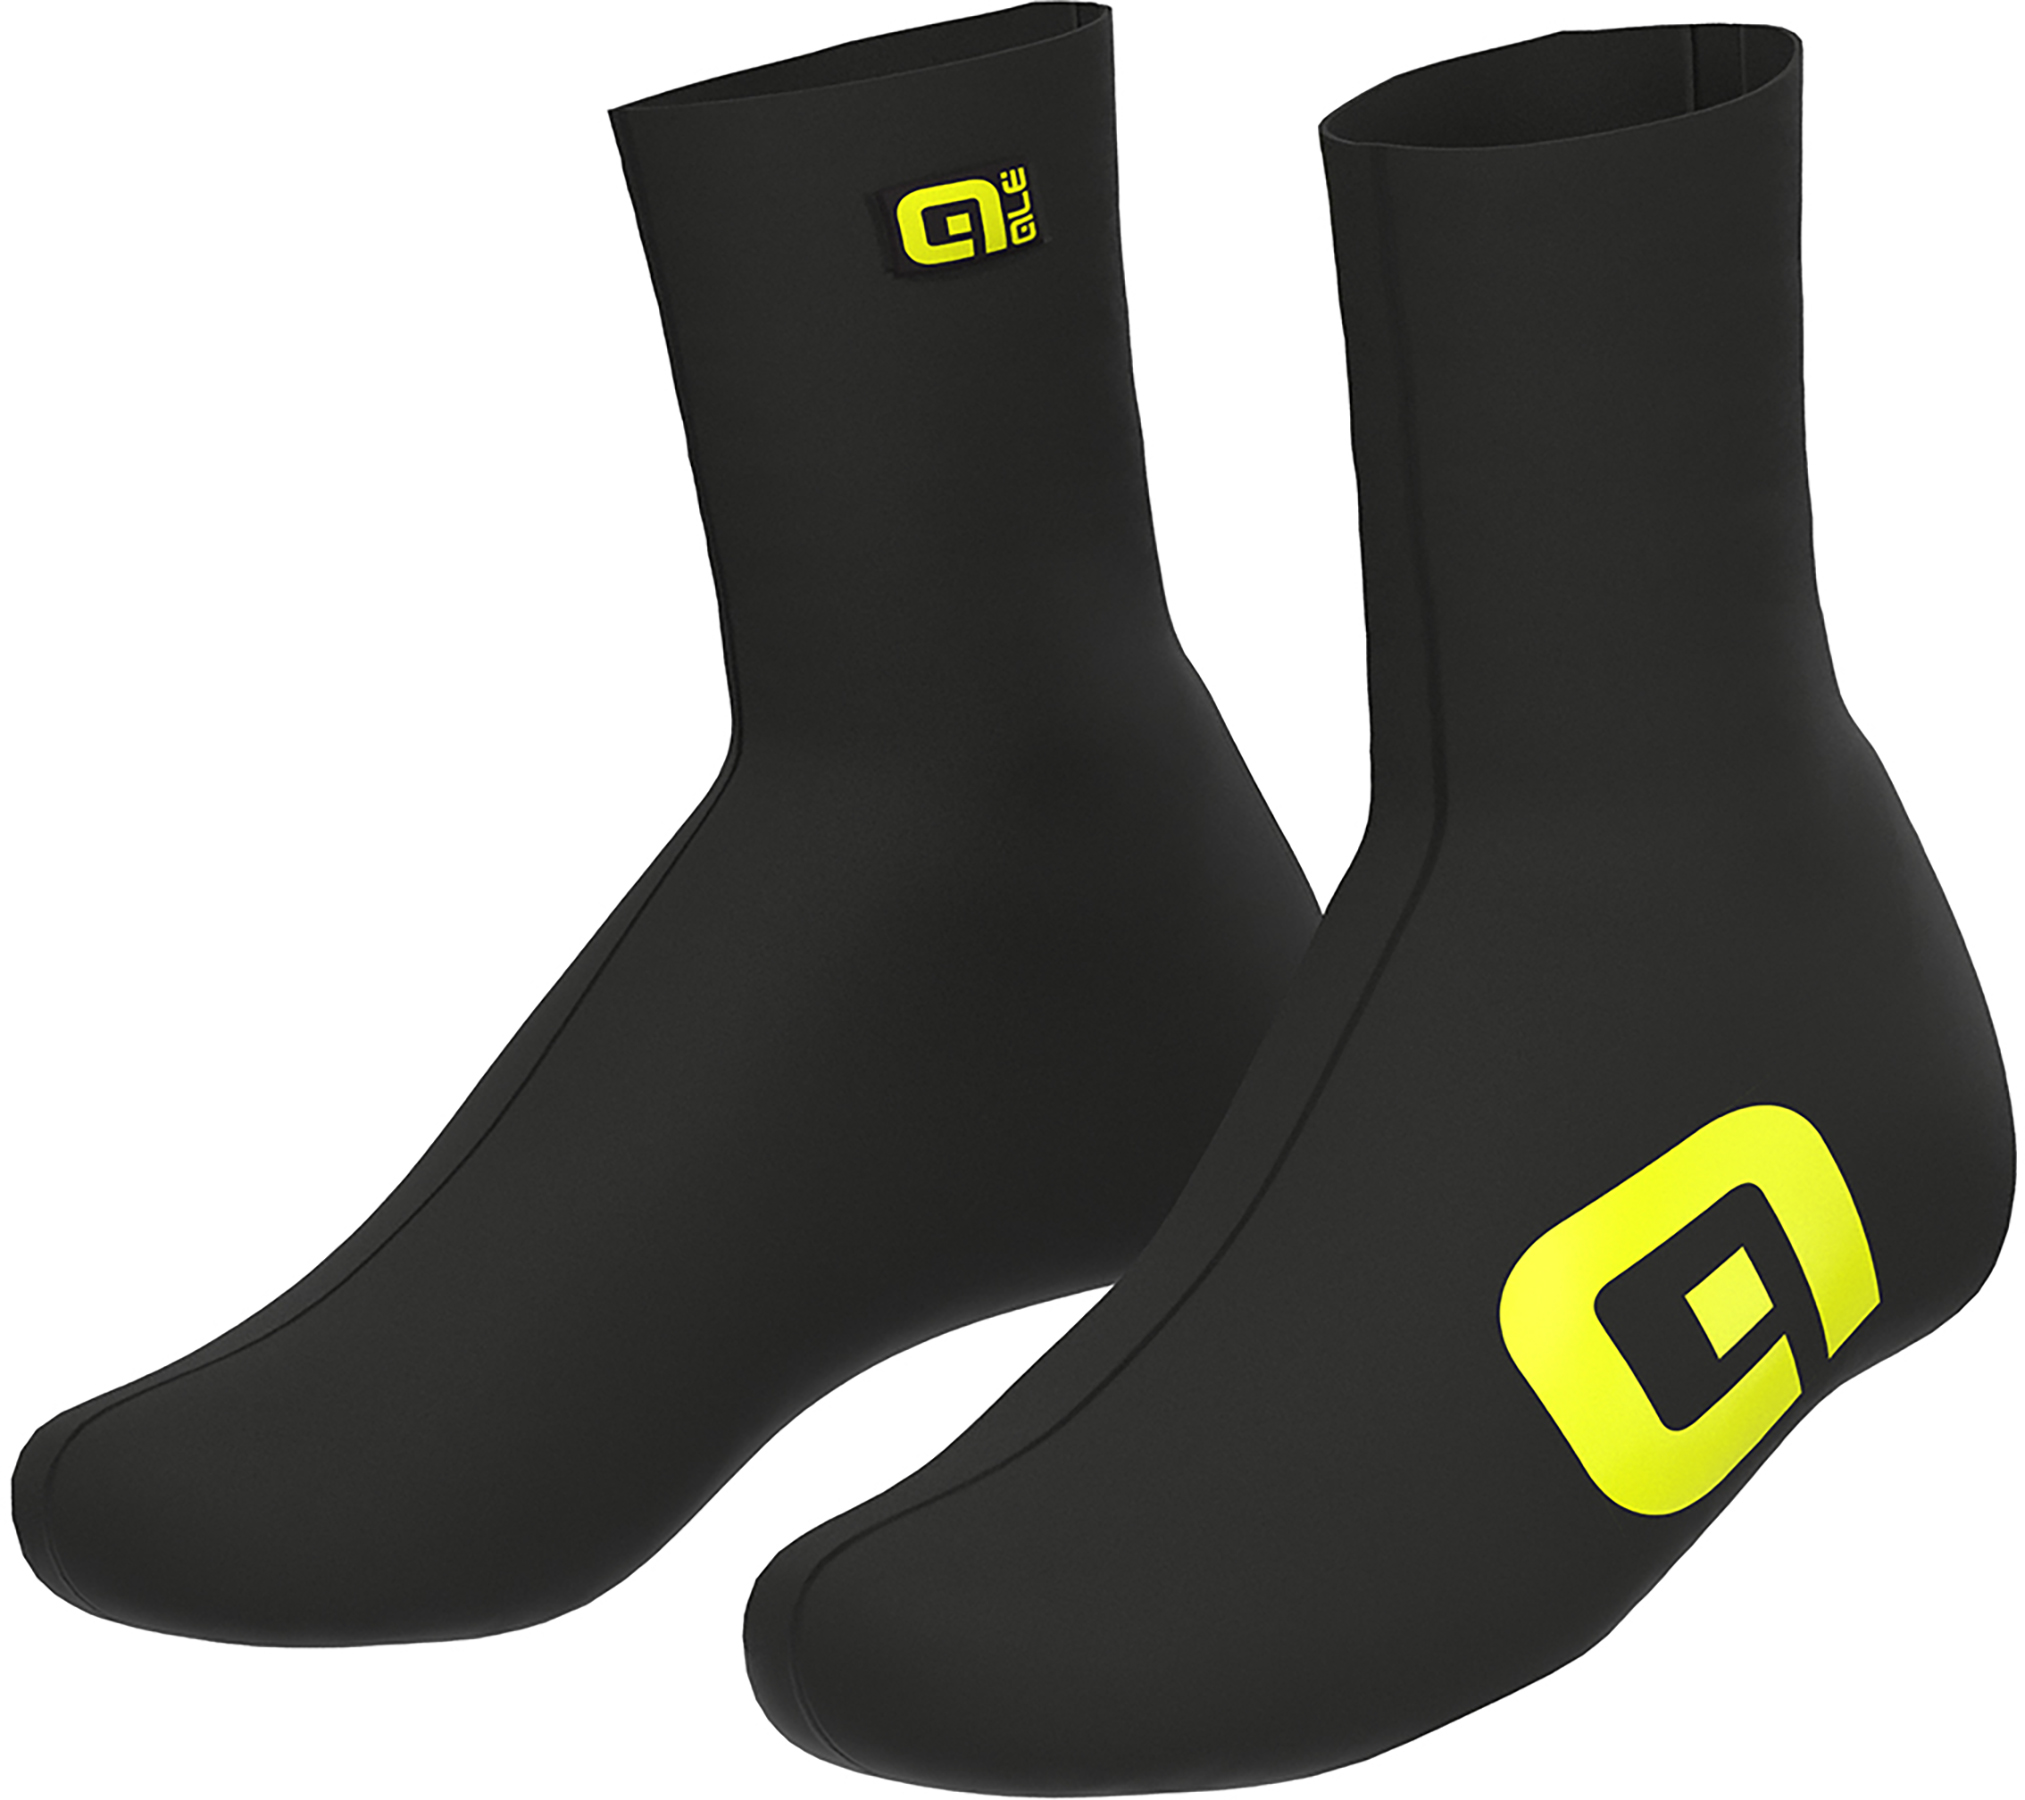 Ale Crono Overshoes - Black Yellow Fluo | Shoe Covers